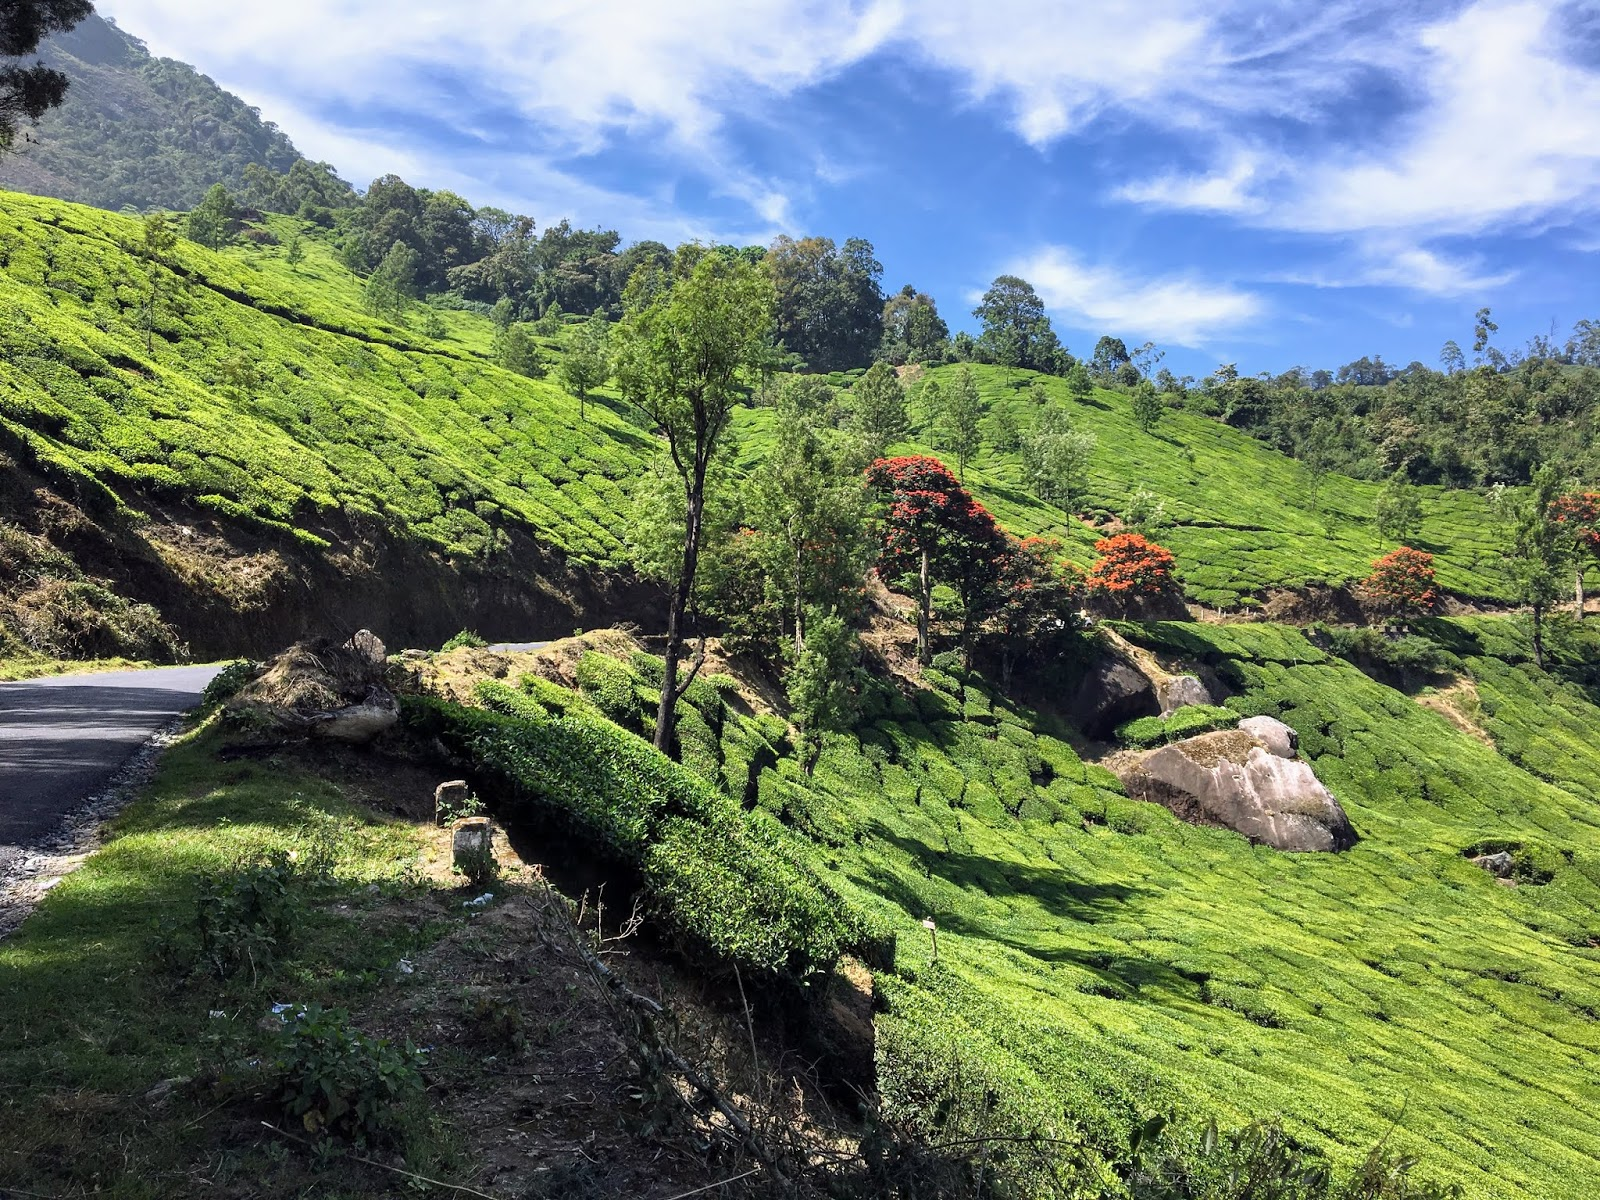 Road Trip to Munnar - Tea Gardens, Sightseeing, Dams, and Wildlife